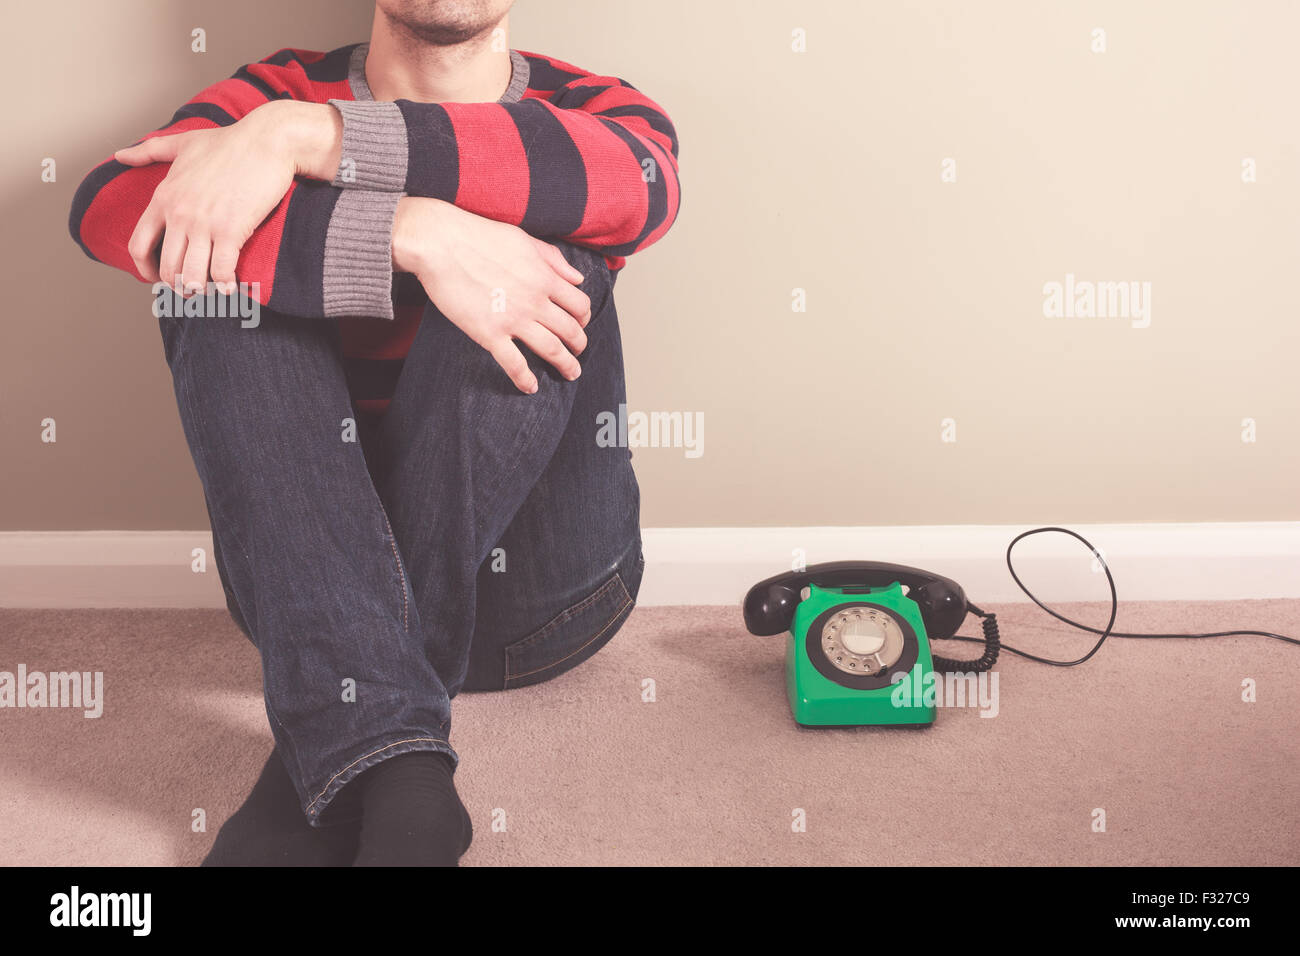 Young man is sitting on the floor with an old rotary telephone - Stock Image